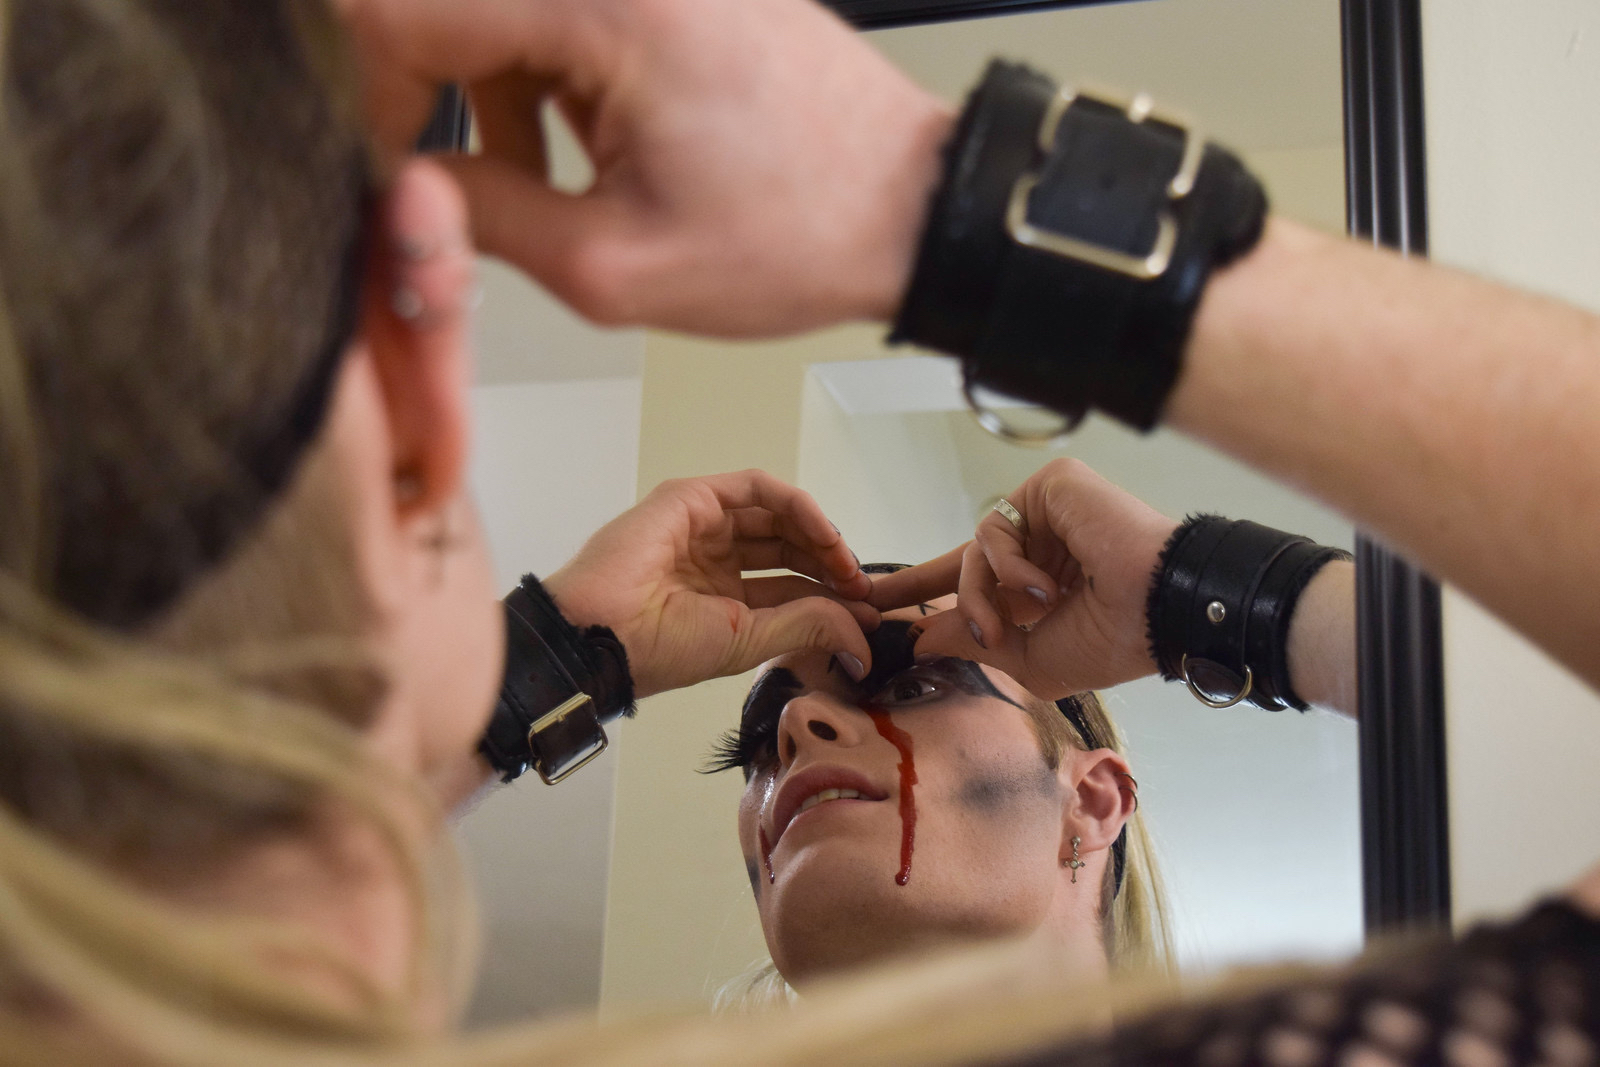 Casey R. Goggin '19 carefully applies fake eyelashes to complete their look.